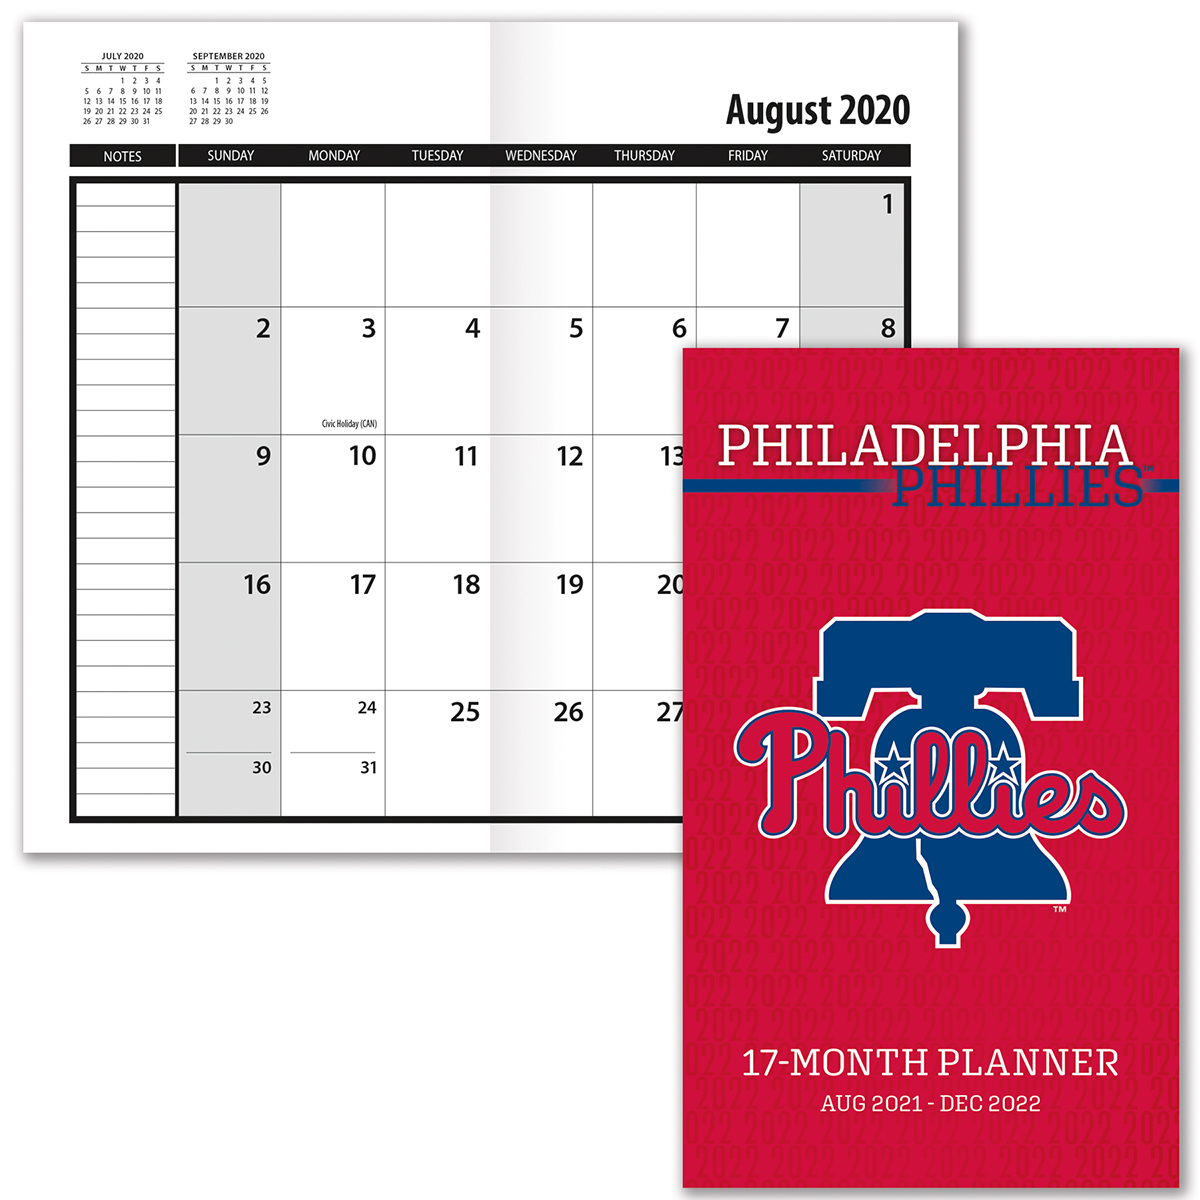 Philadelphia Phillies 2019-20 Academic Planner